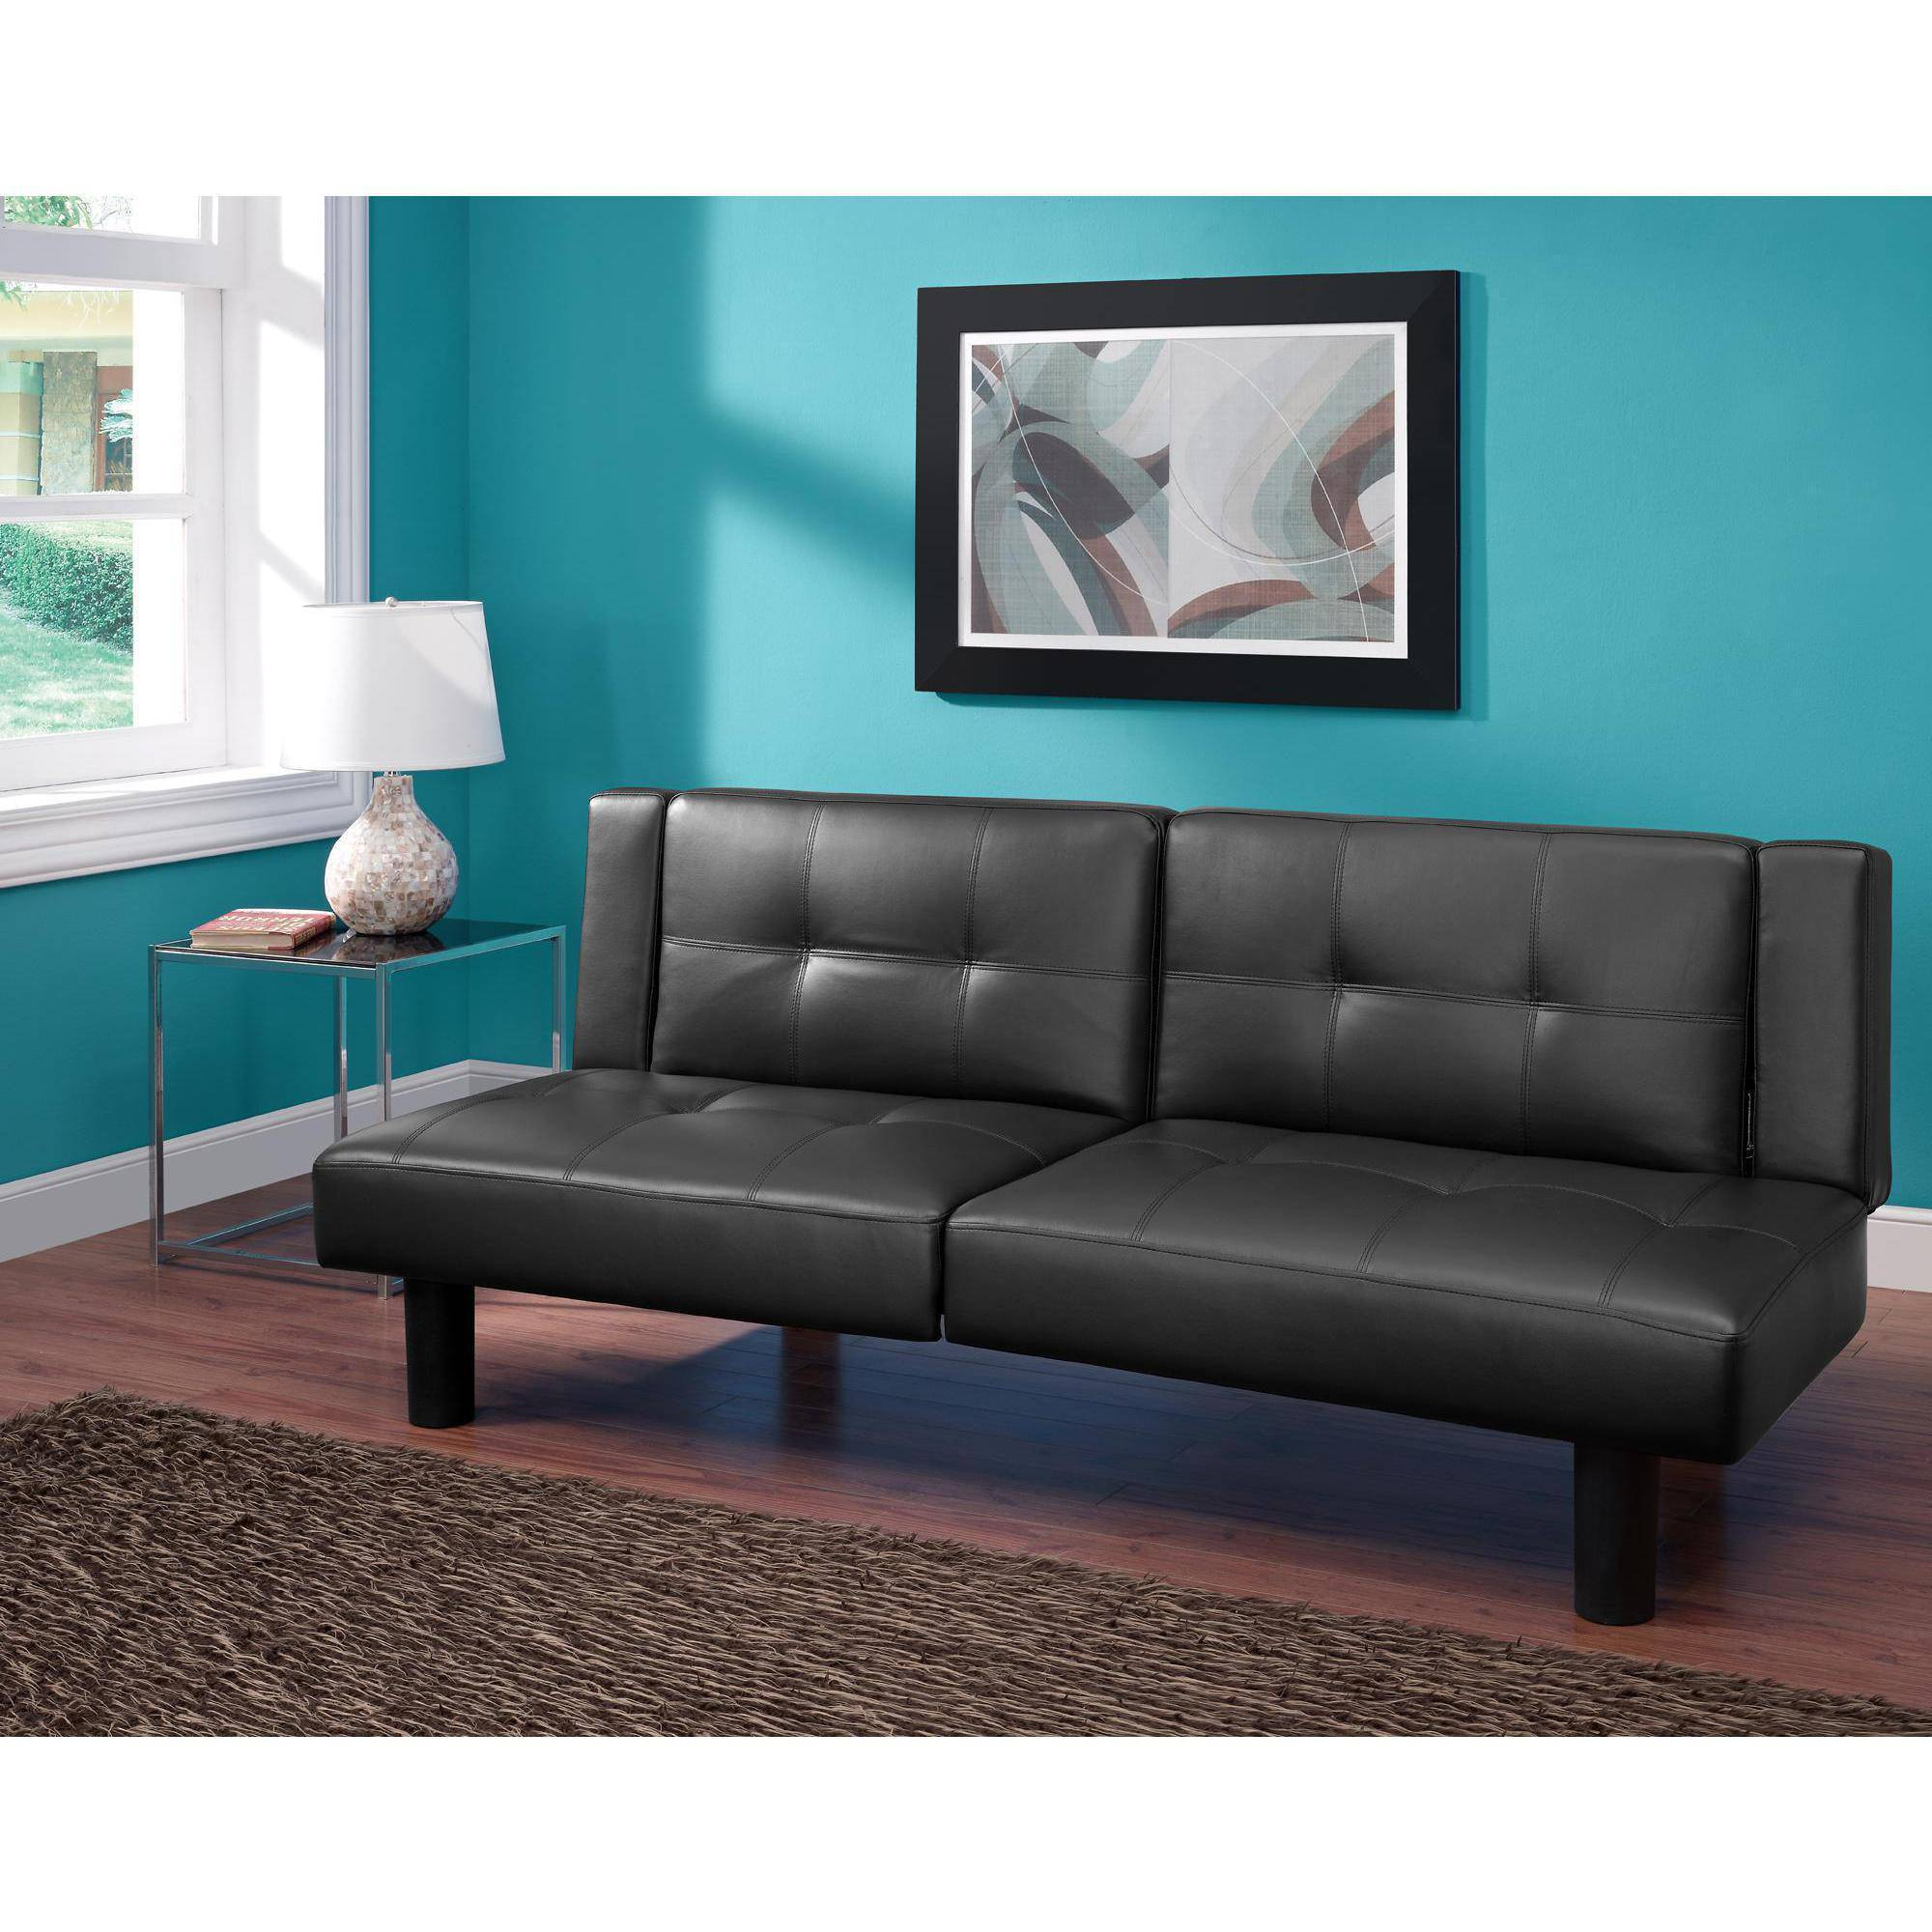 cup holder sofa bed house of fraser leather futon madrid with drop